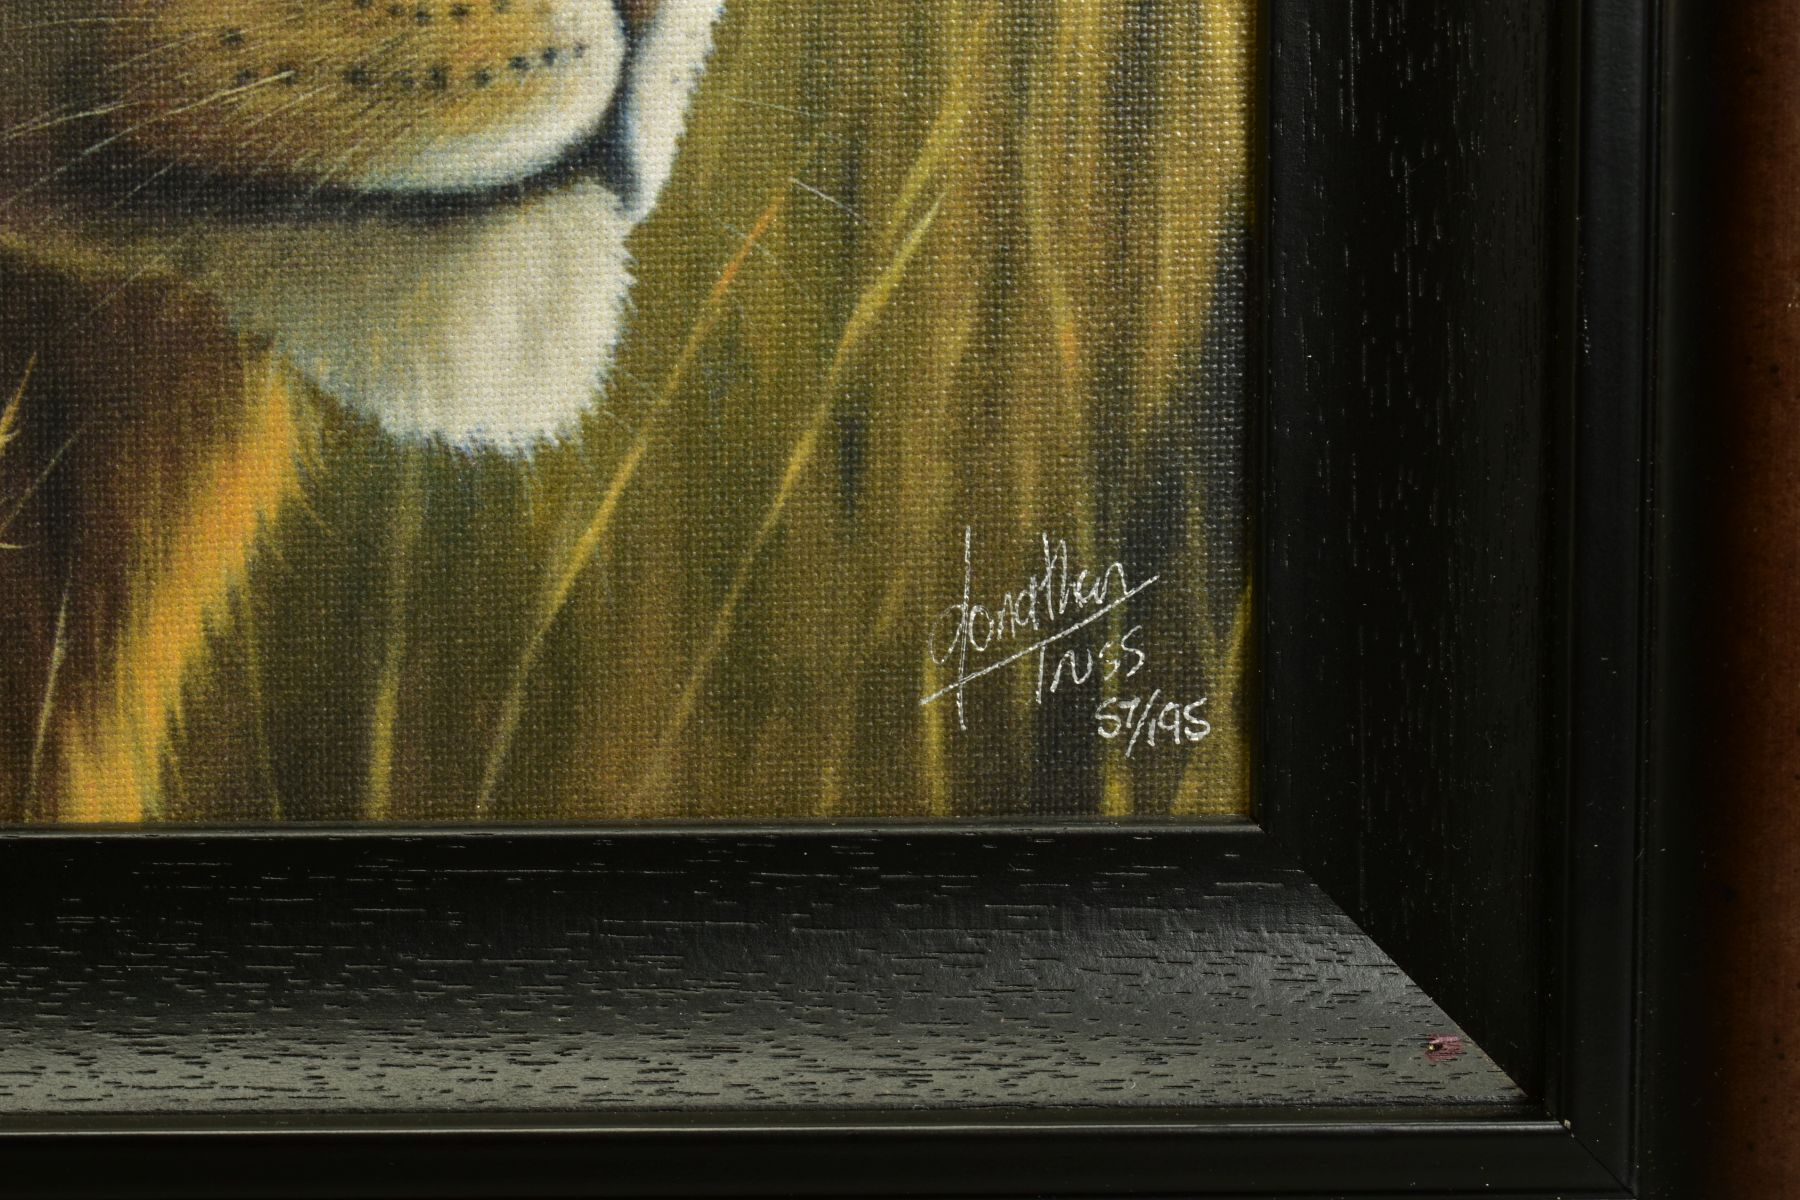 JONATHAN TRUSS (BRITISH 1960), 'Braveheart', a Limited Edition portrait of a Lion, signed bottom - Image 3 of 8